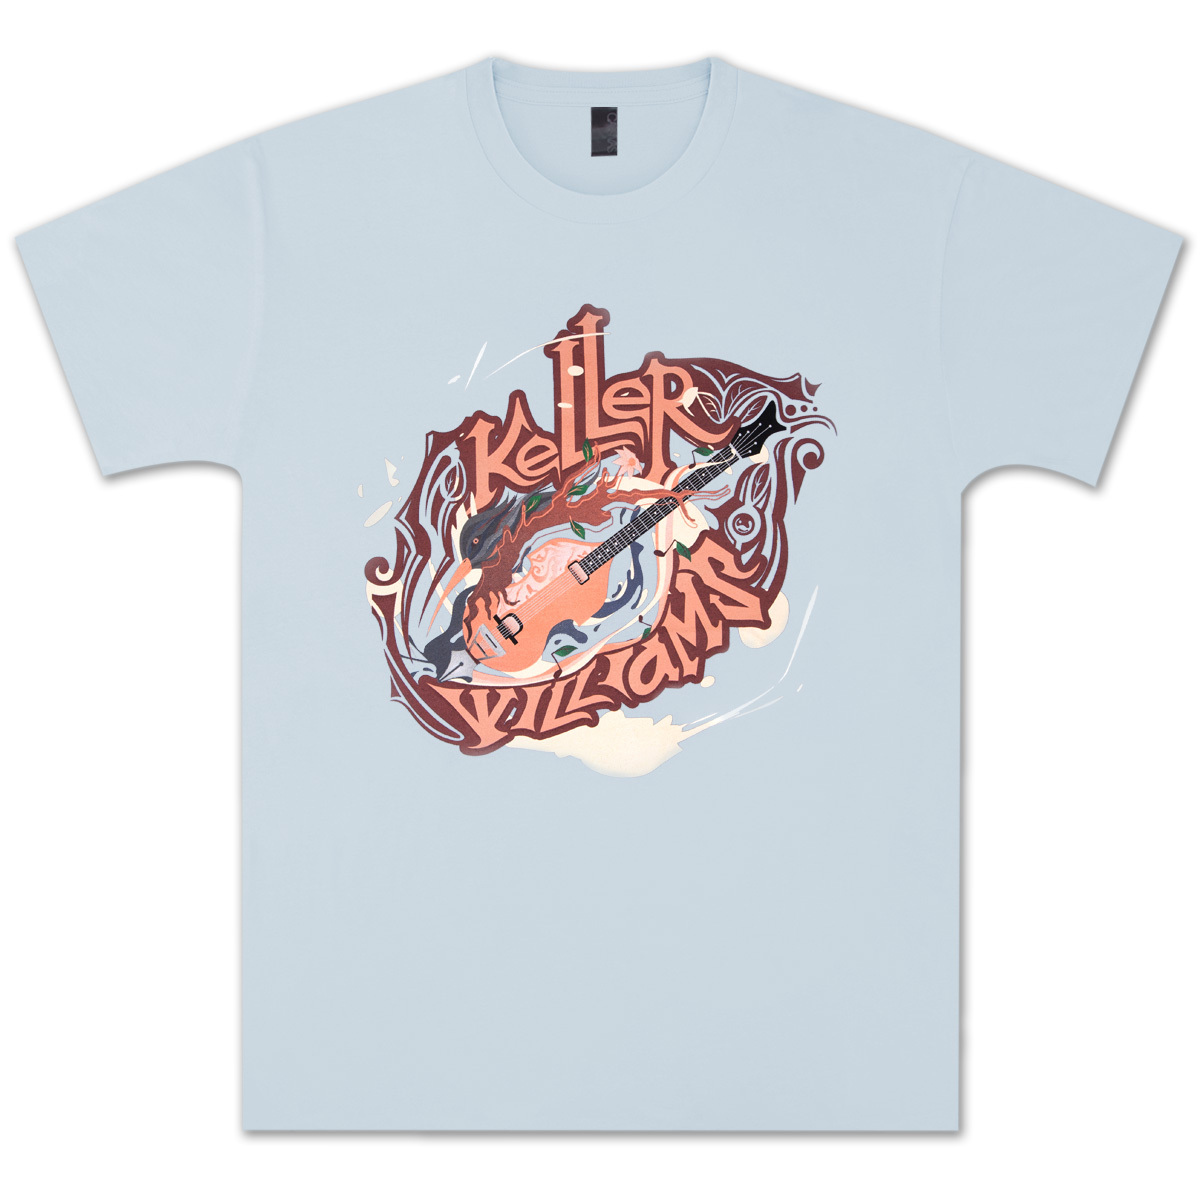 Keller Williams Bass Bird  T-Shirt